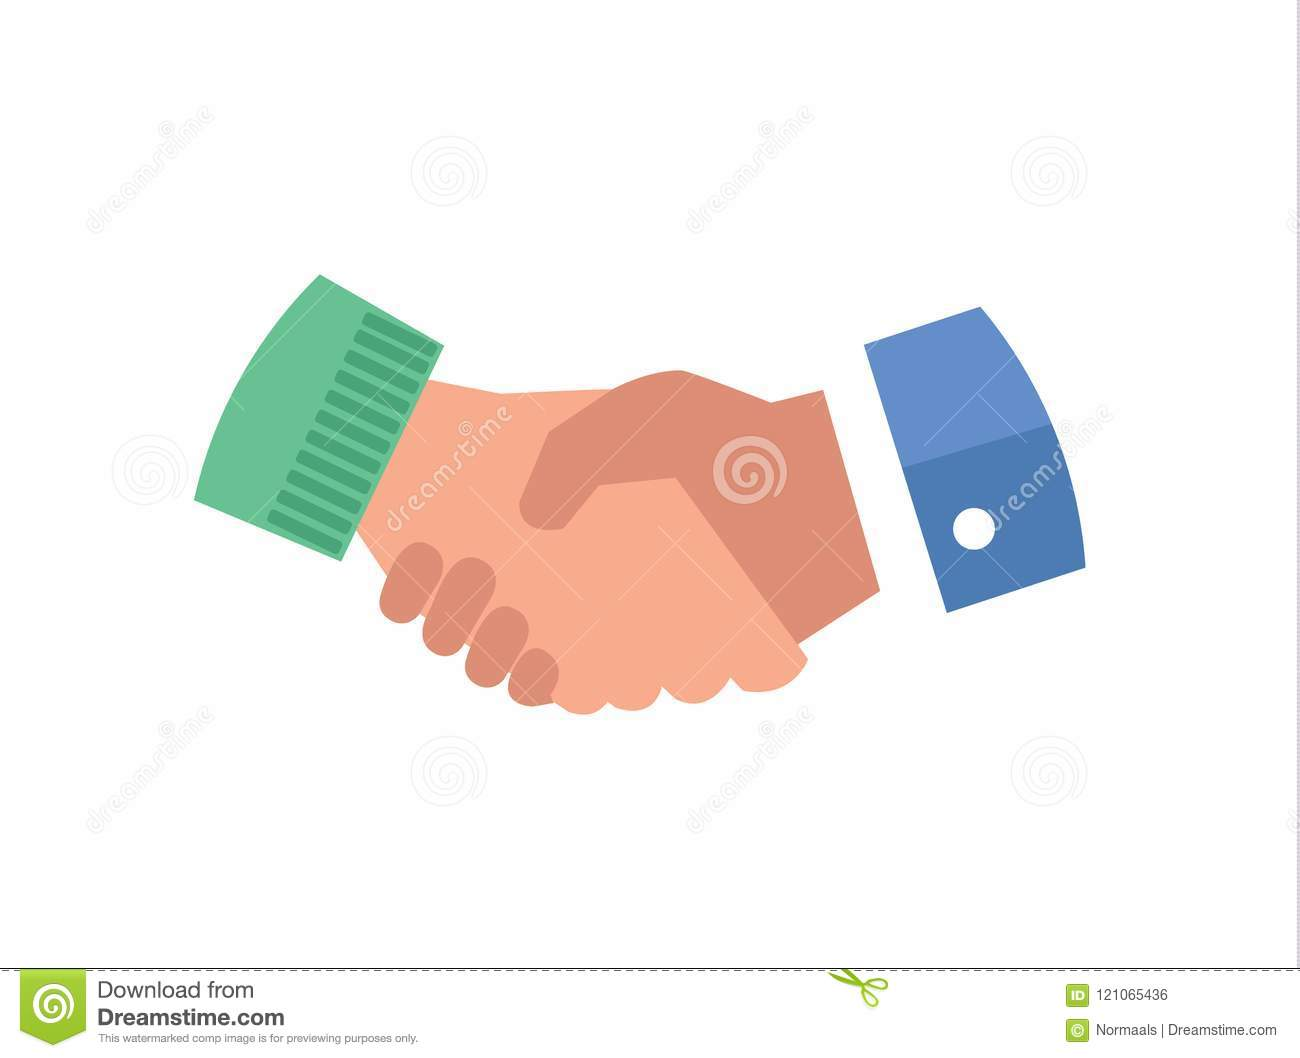 Hand shake flat vector icon illustration. Business partnership cooperation symbol, deal making agreement concept.